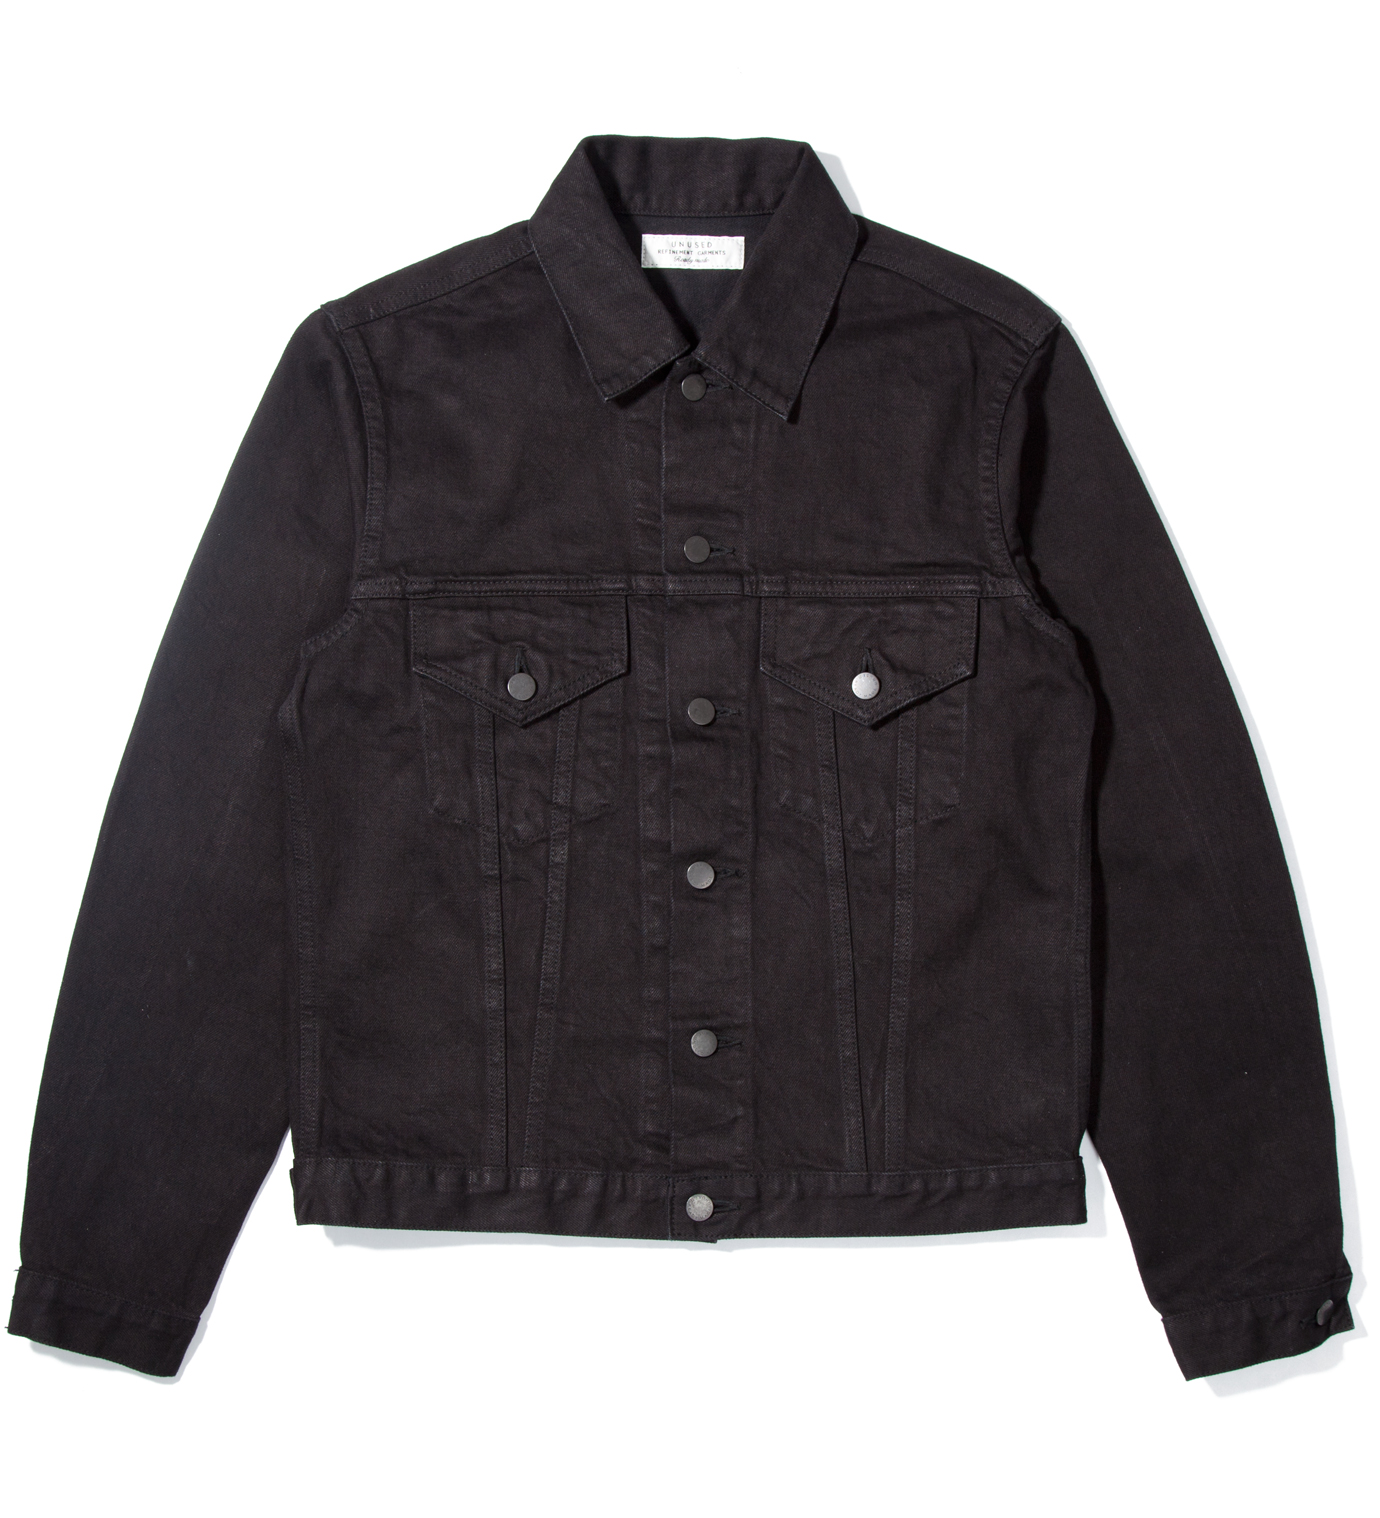 UNUSED Black Denim Jacket